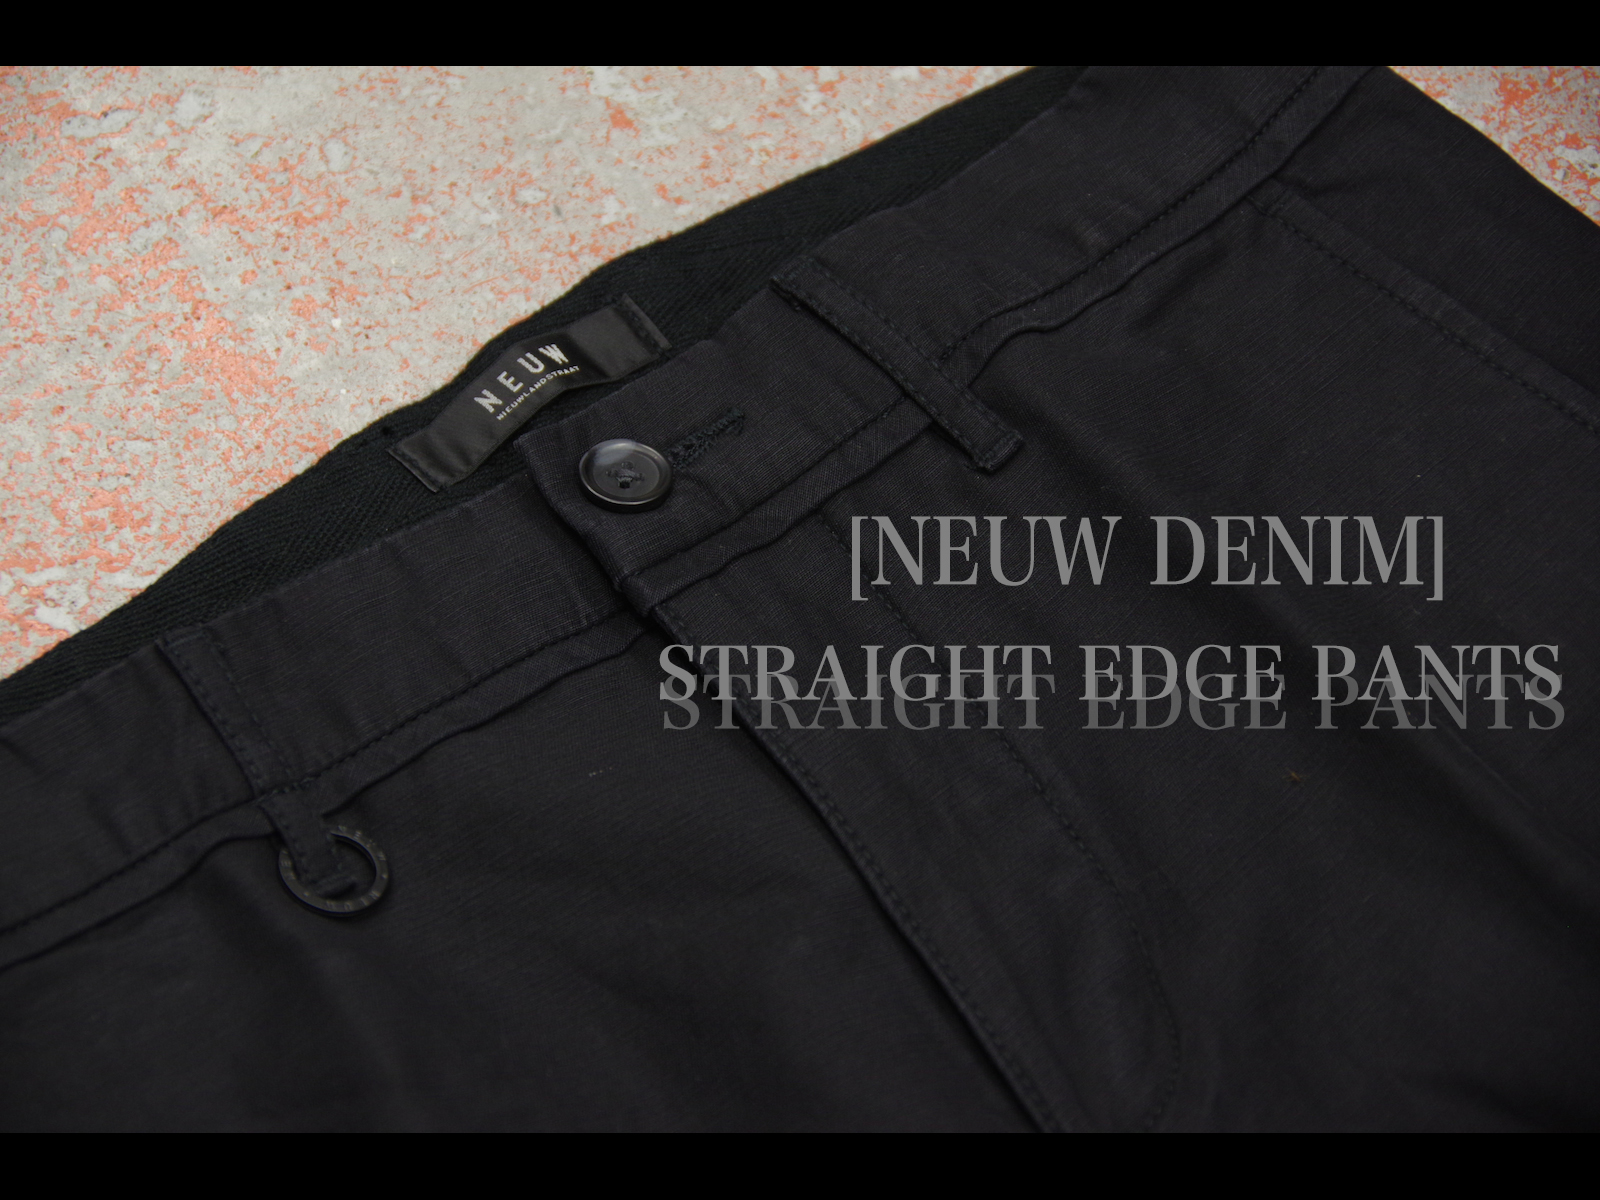 PICK UP ITEM – NEUW DENIM STRAIGHT EDGE PANTS